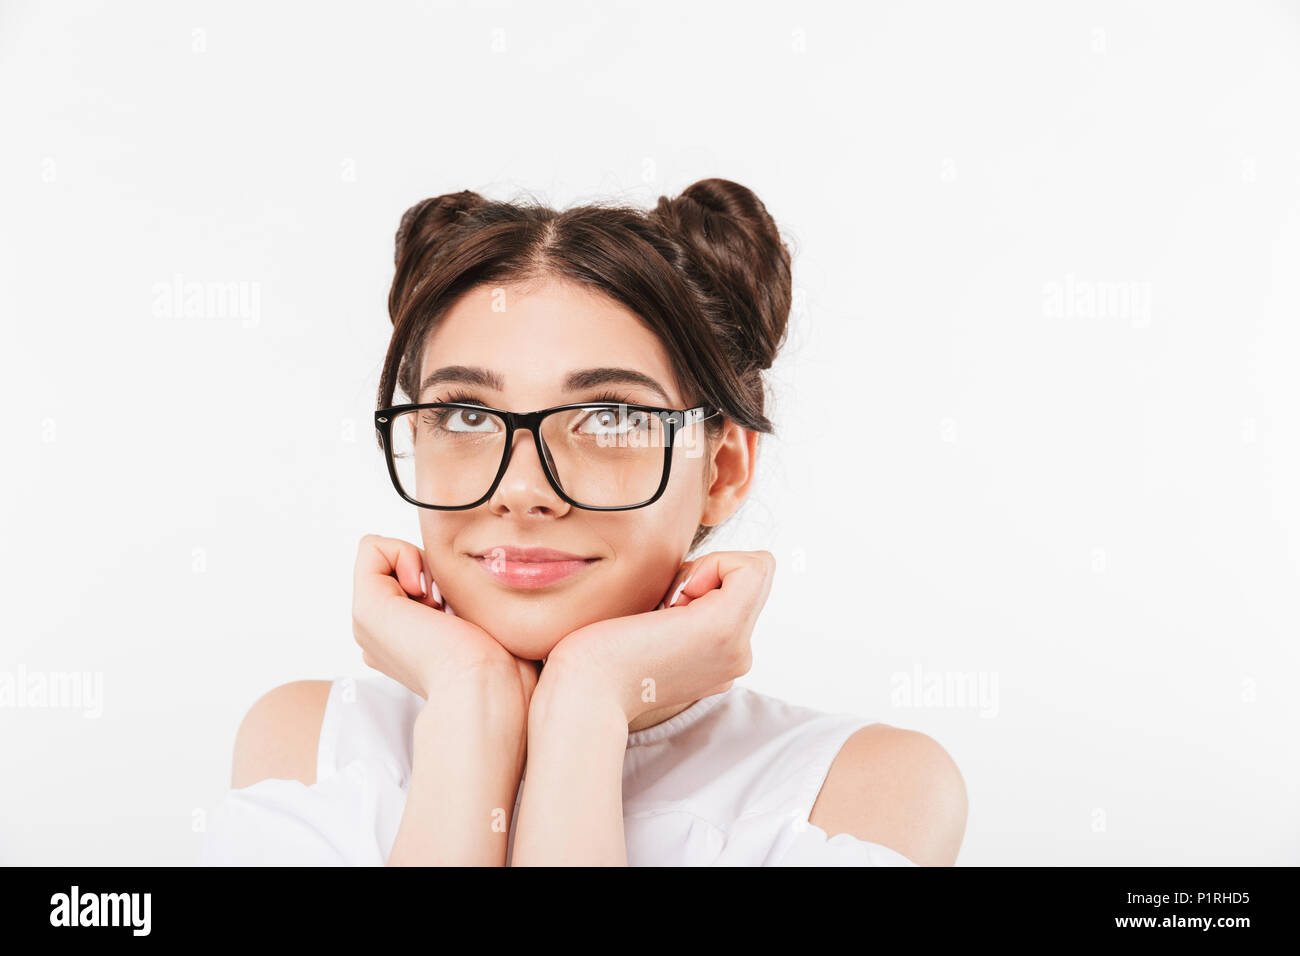 Portrait of a smiling young girl in sunglasses looking up at copy space isolated over white background - Stock Image